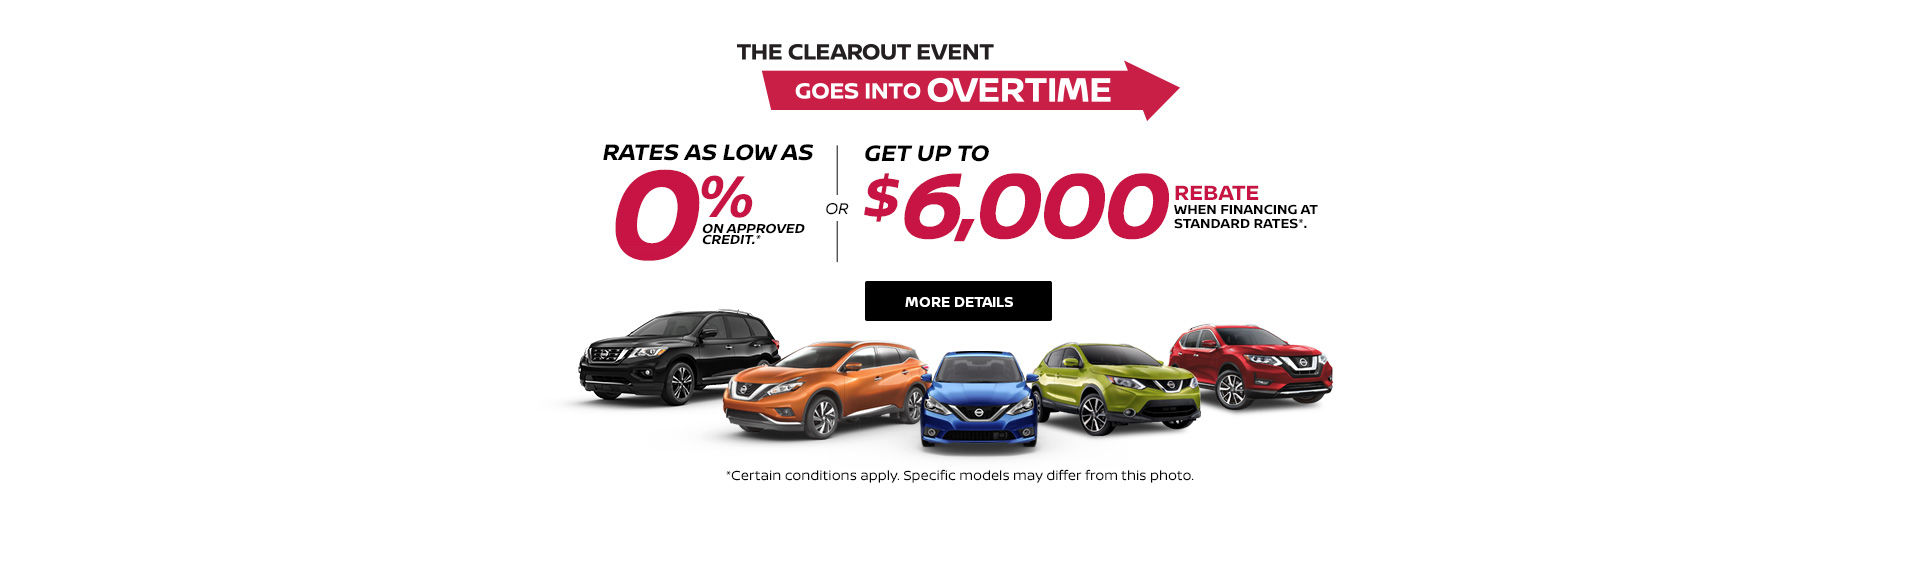 The Clearout Event Goes into Overtime!